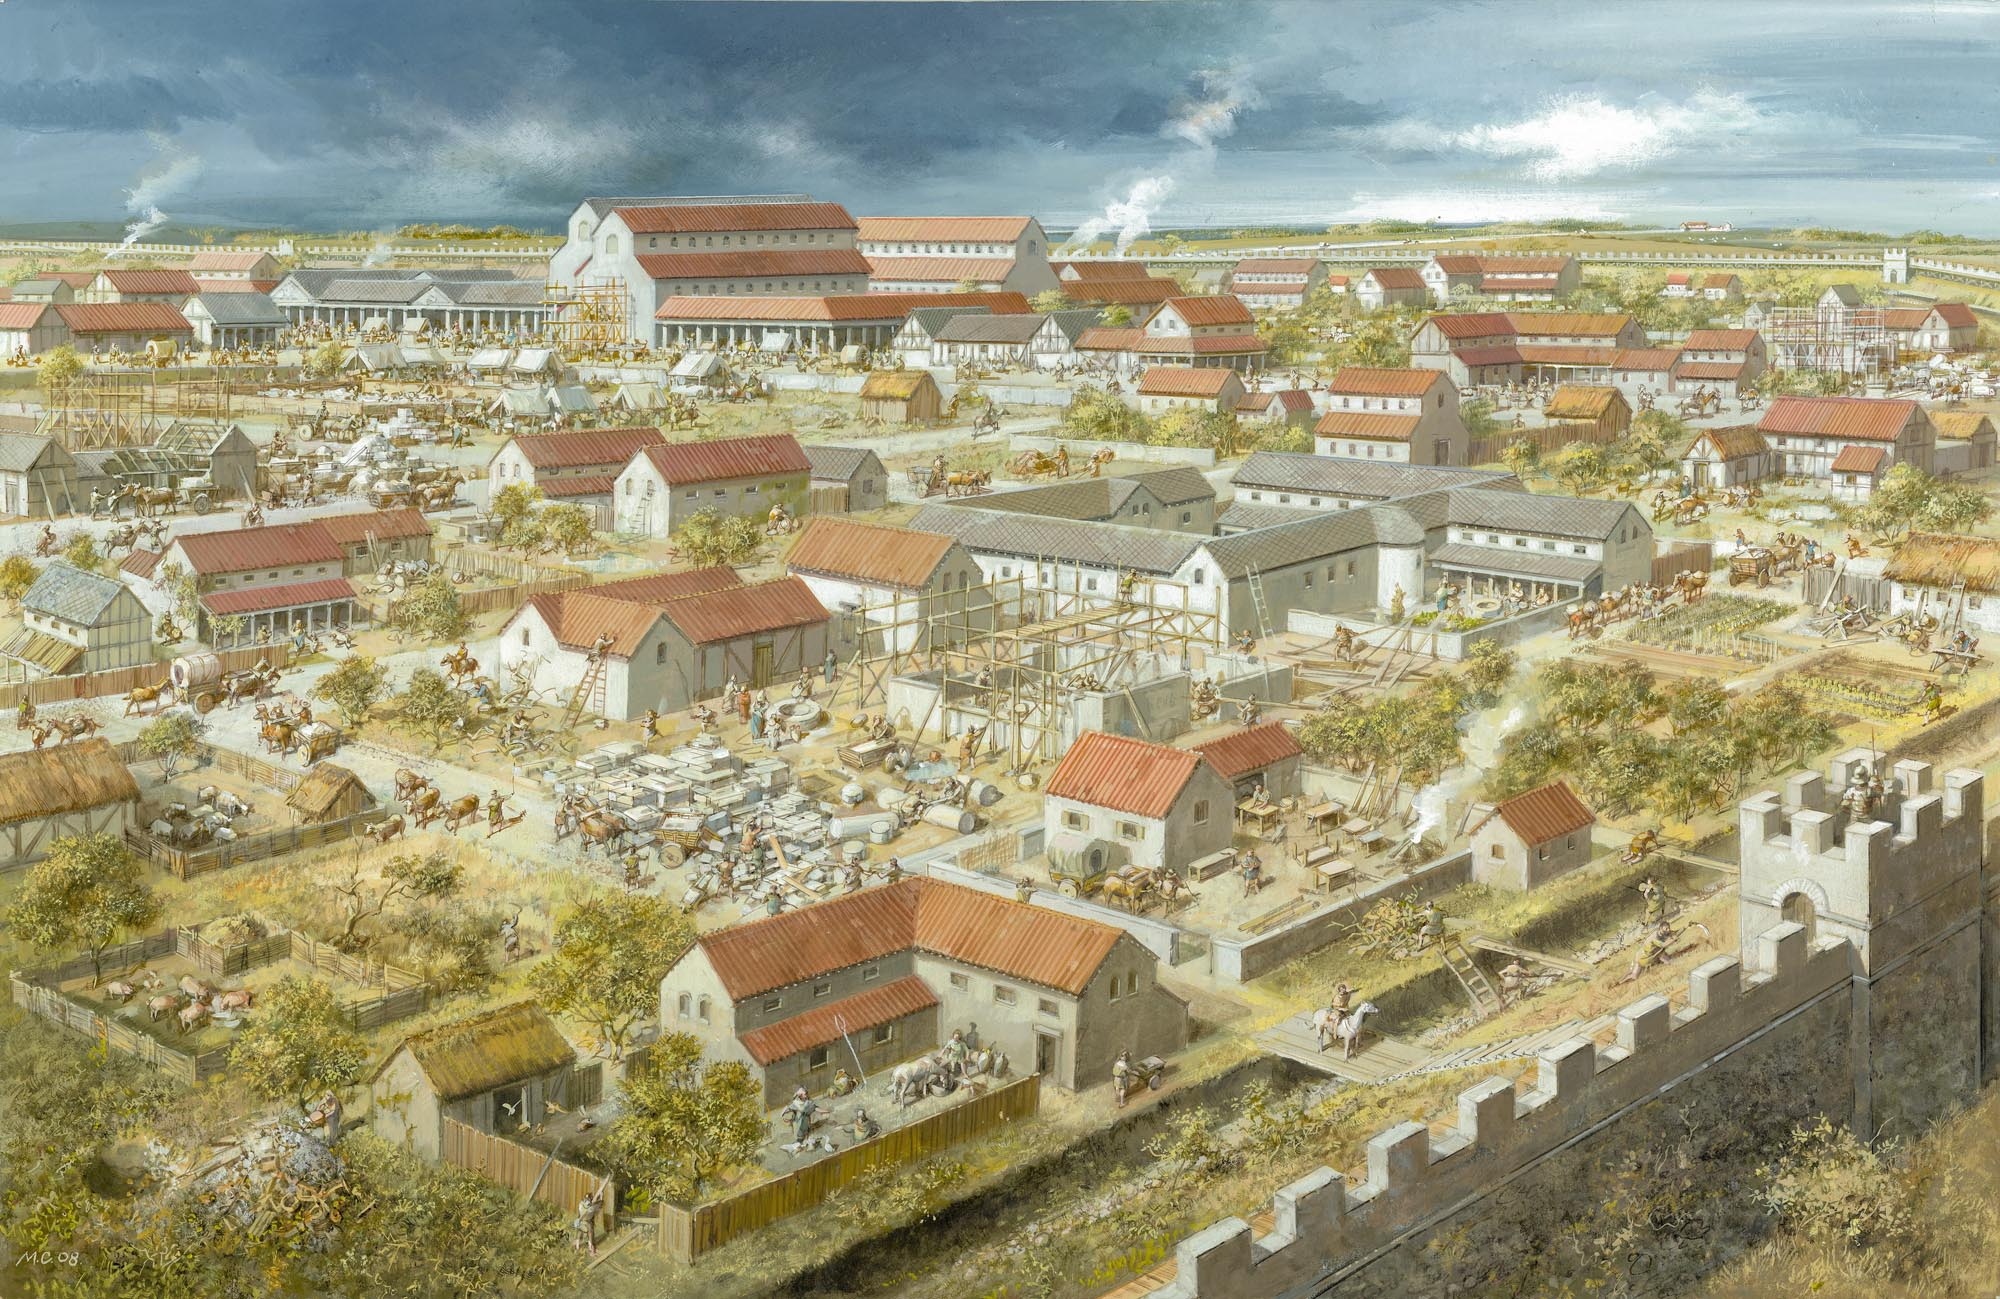 Roman Leicester from the north-east as it may have looked during the late 3rd century CE - Mike Codd  / University of Leicester Archaeological Services